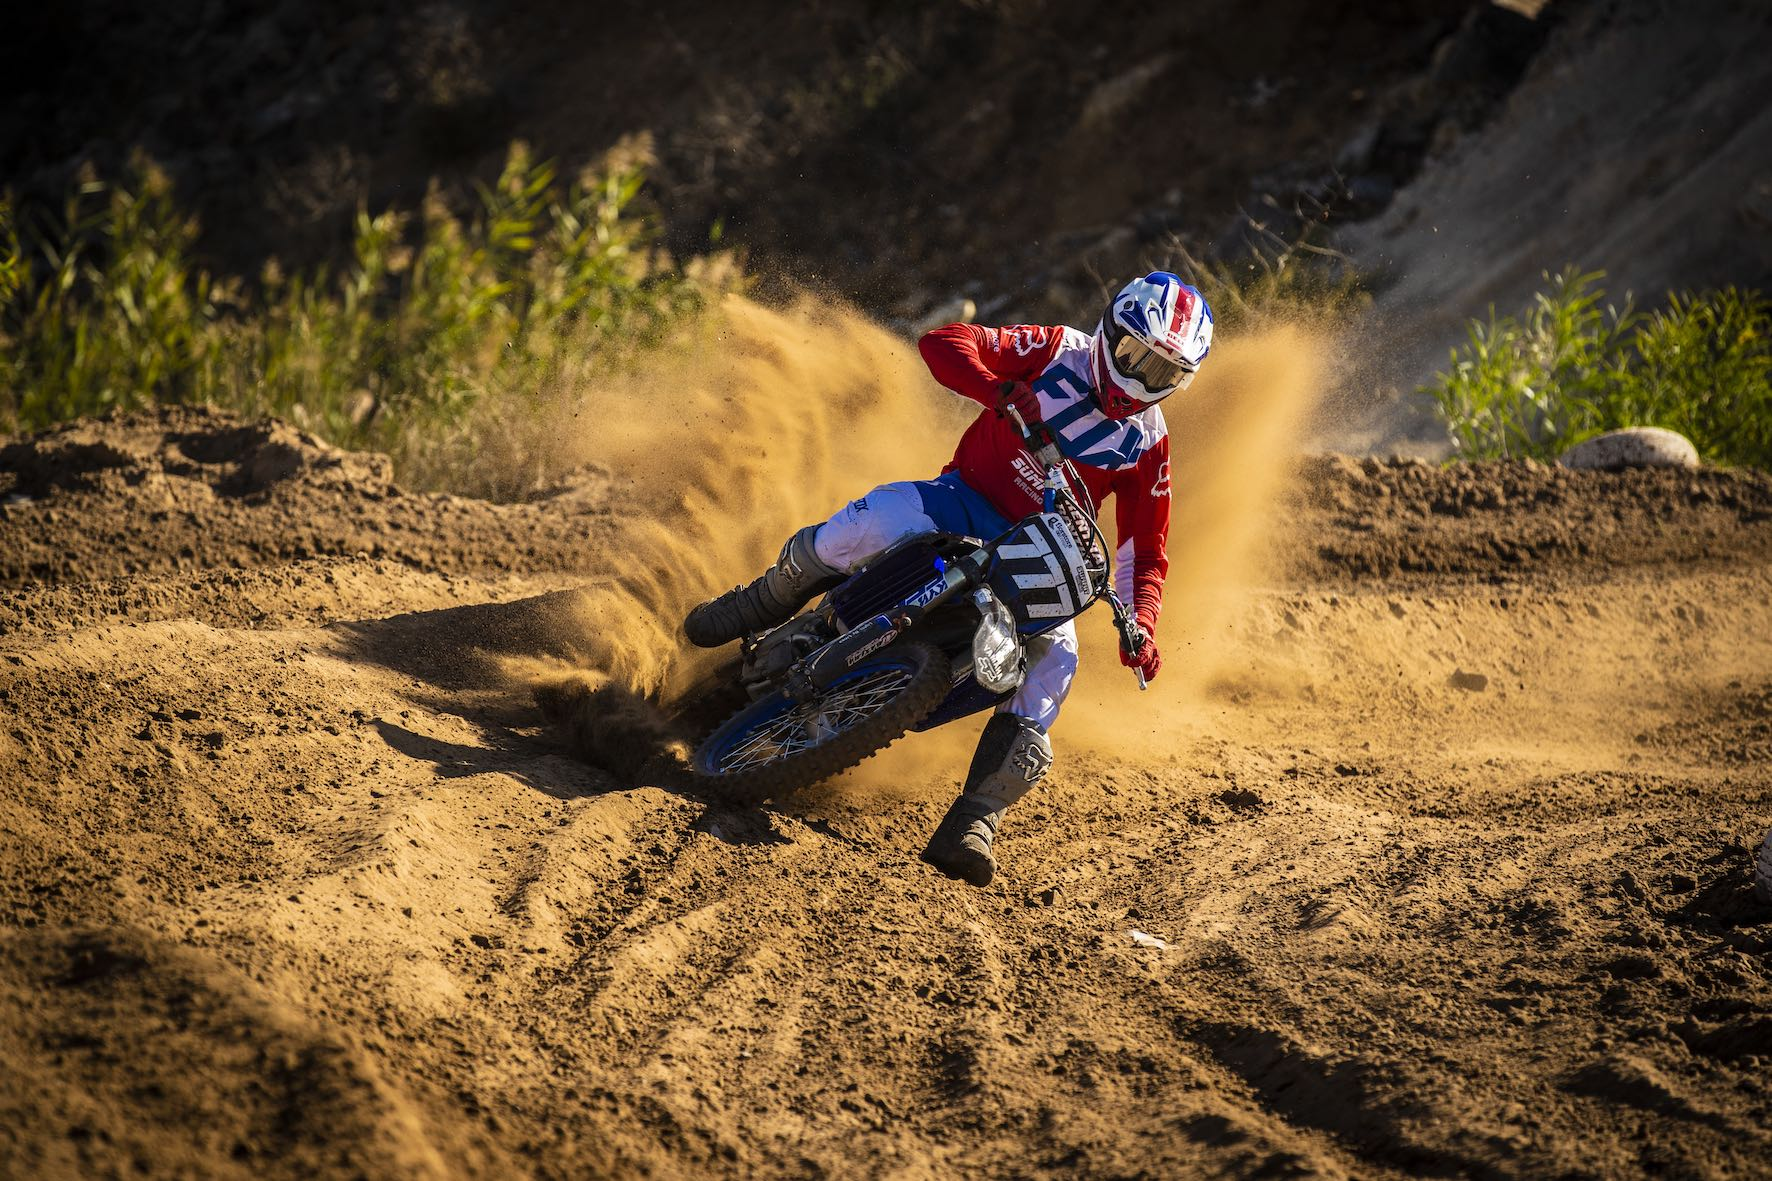 Lloyd Vercueil winning the MX1 Class at Round 2 of the 2019 TRP Distributors South African National Motocross Championship